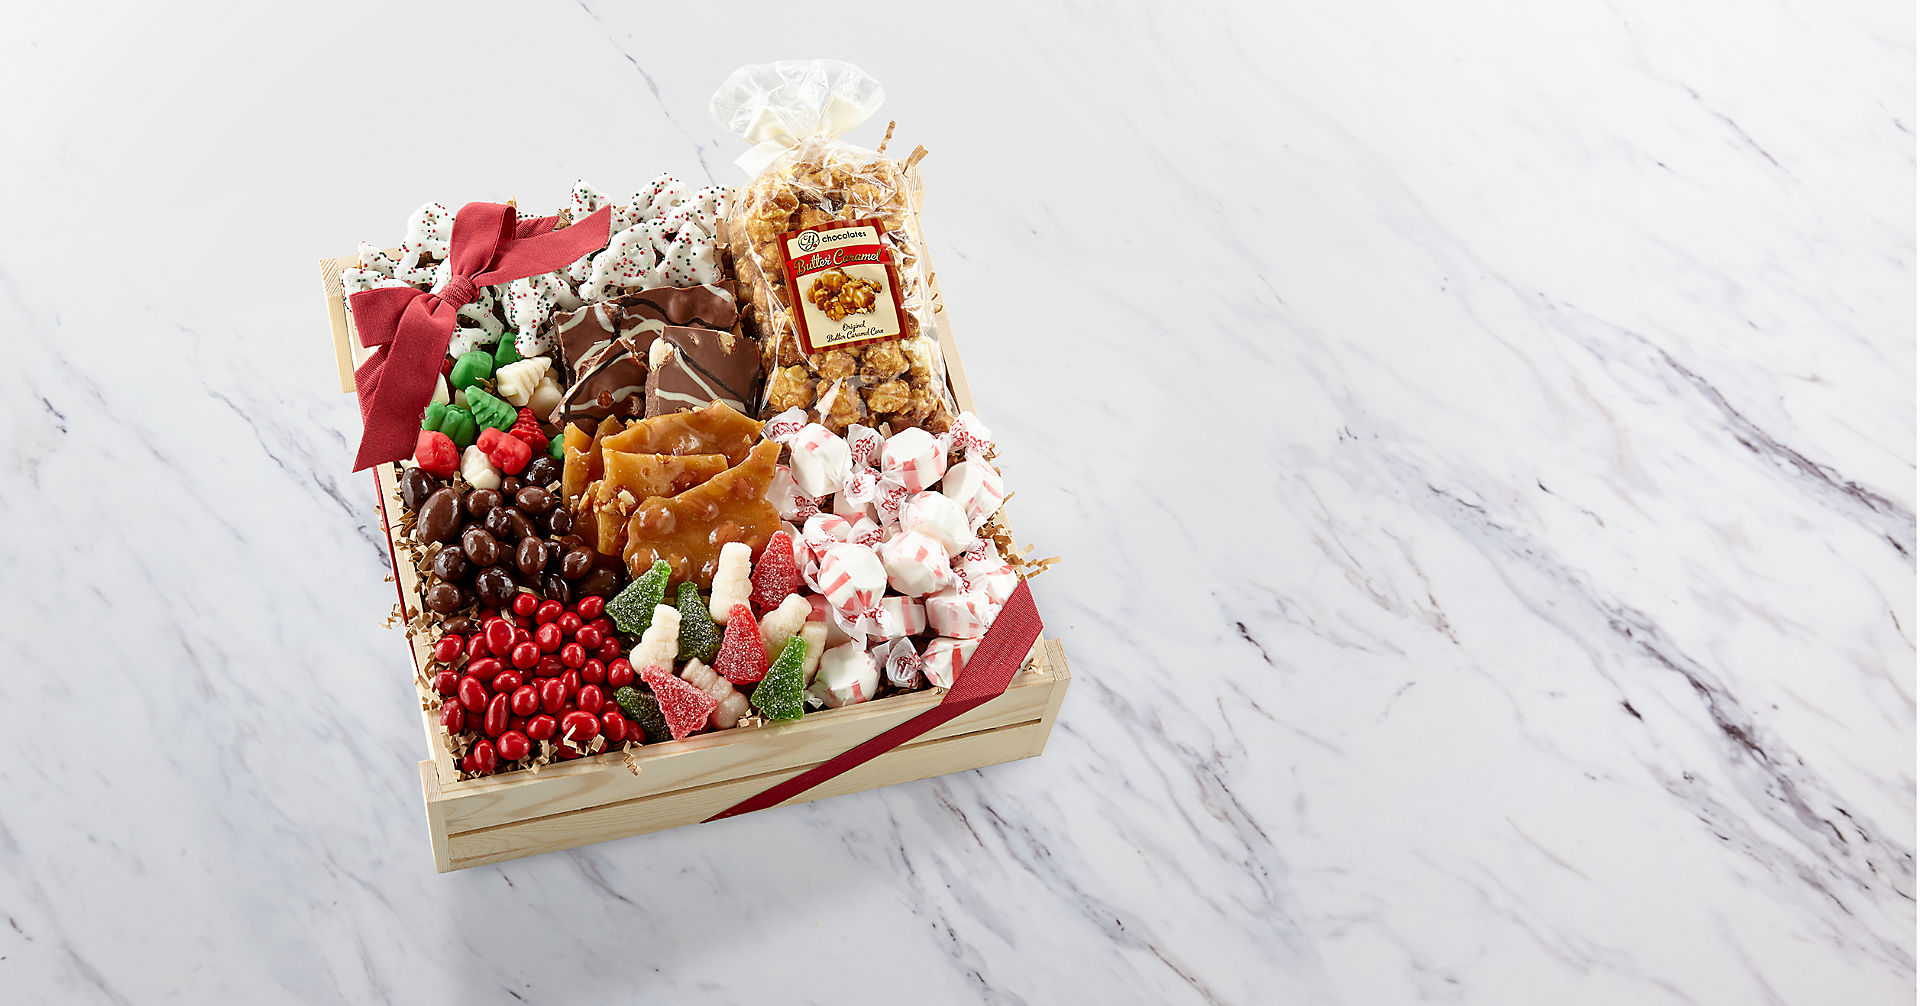 Holiday Delights Chocolate & Sweets Gourmet Gift Basket - BETTER - Image 1 Of 2